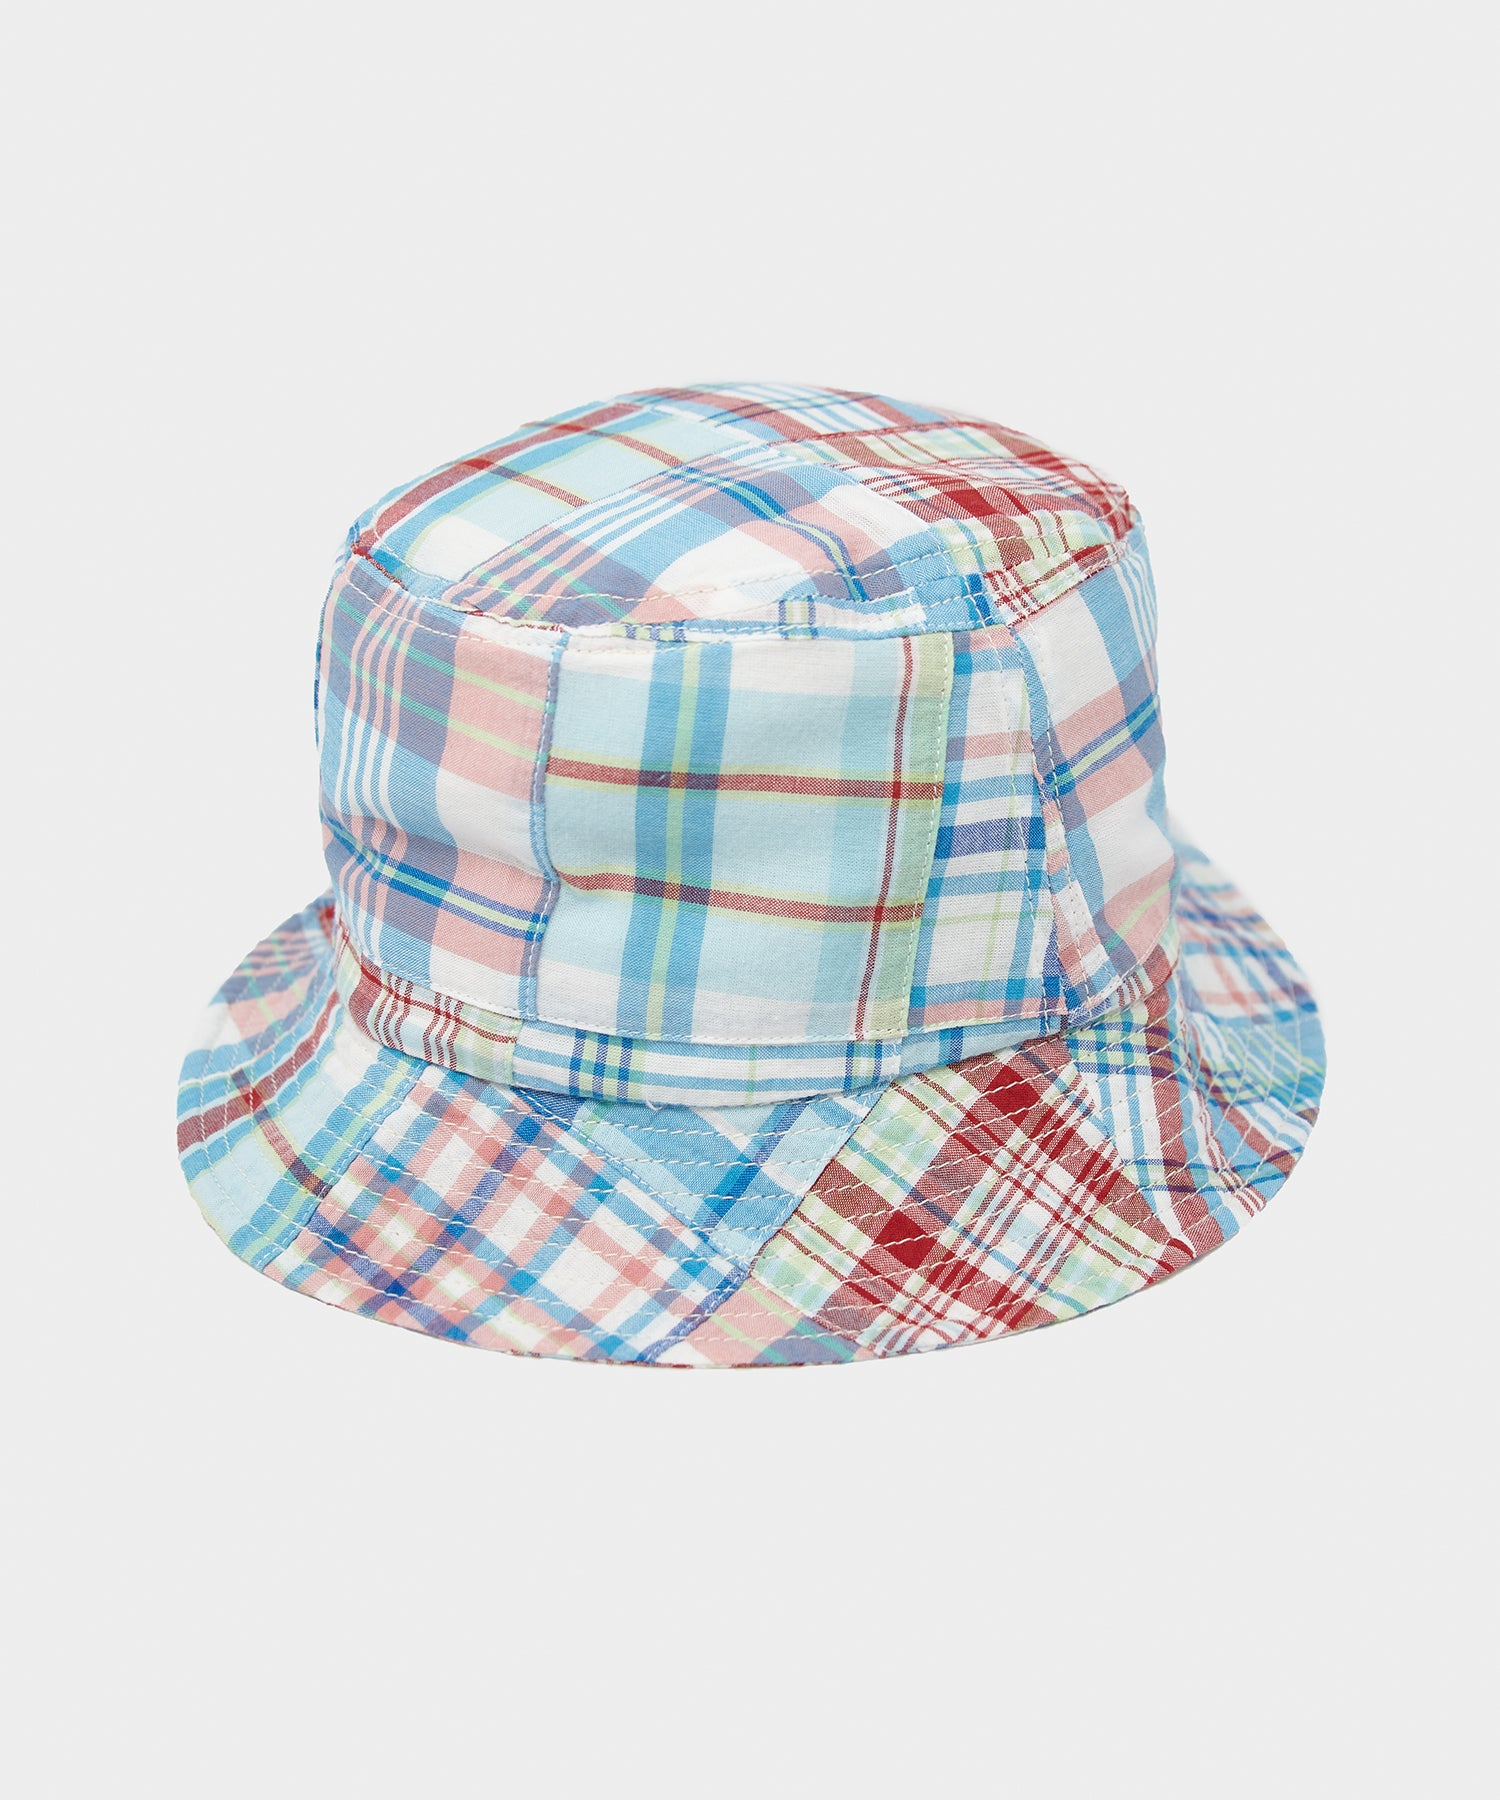 Câbleami Madras Patchwork Bucket Hat in Blue